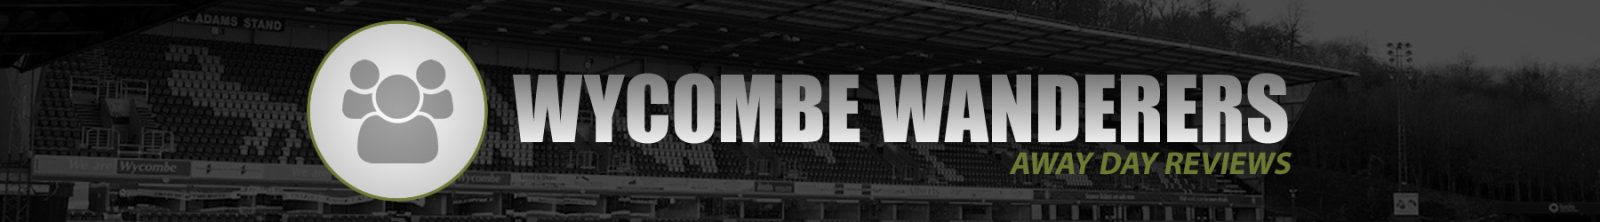 Review Wycombe Wanderers